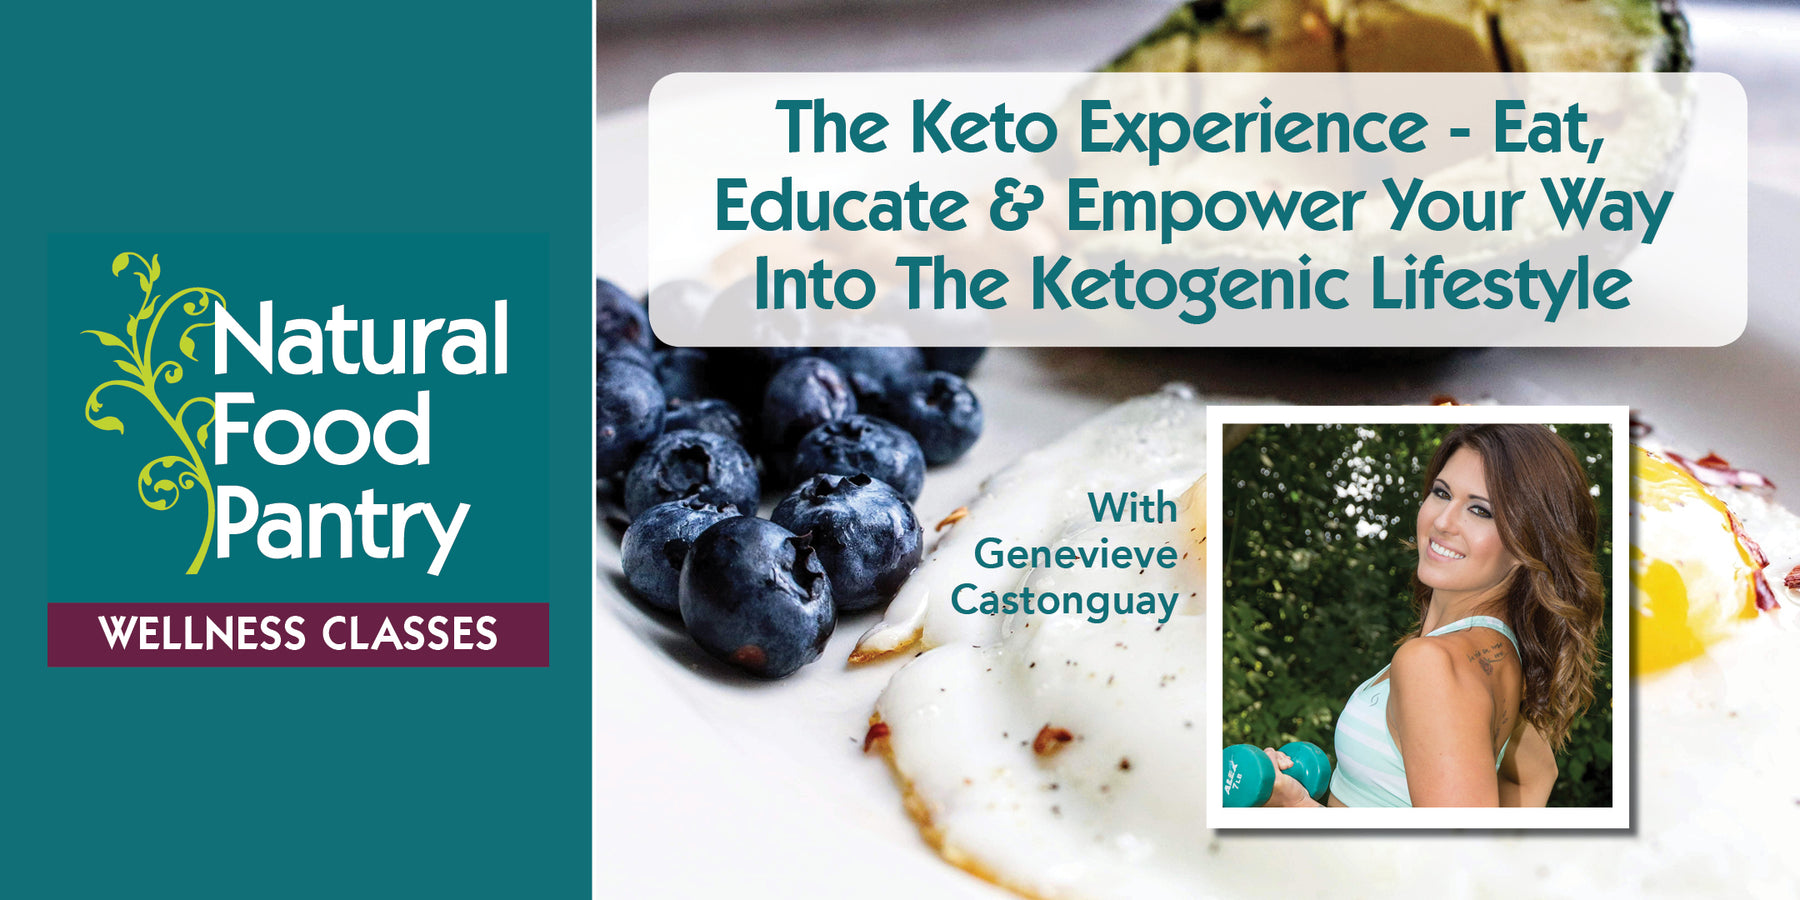 May 6: The Keto Experience: Eat, Educate & Empower Your Way Into The Ketogenic Lifestyle